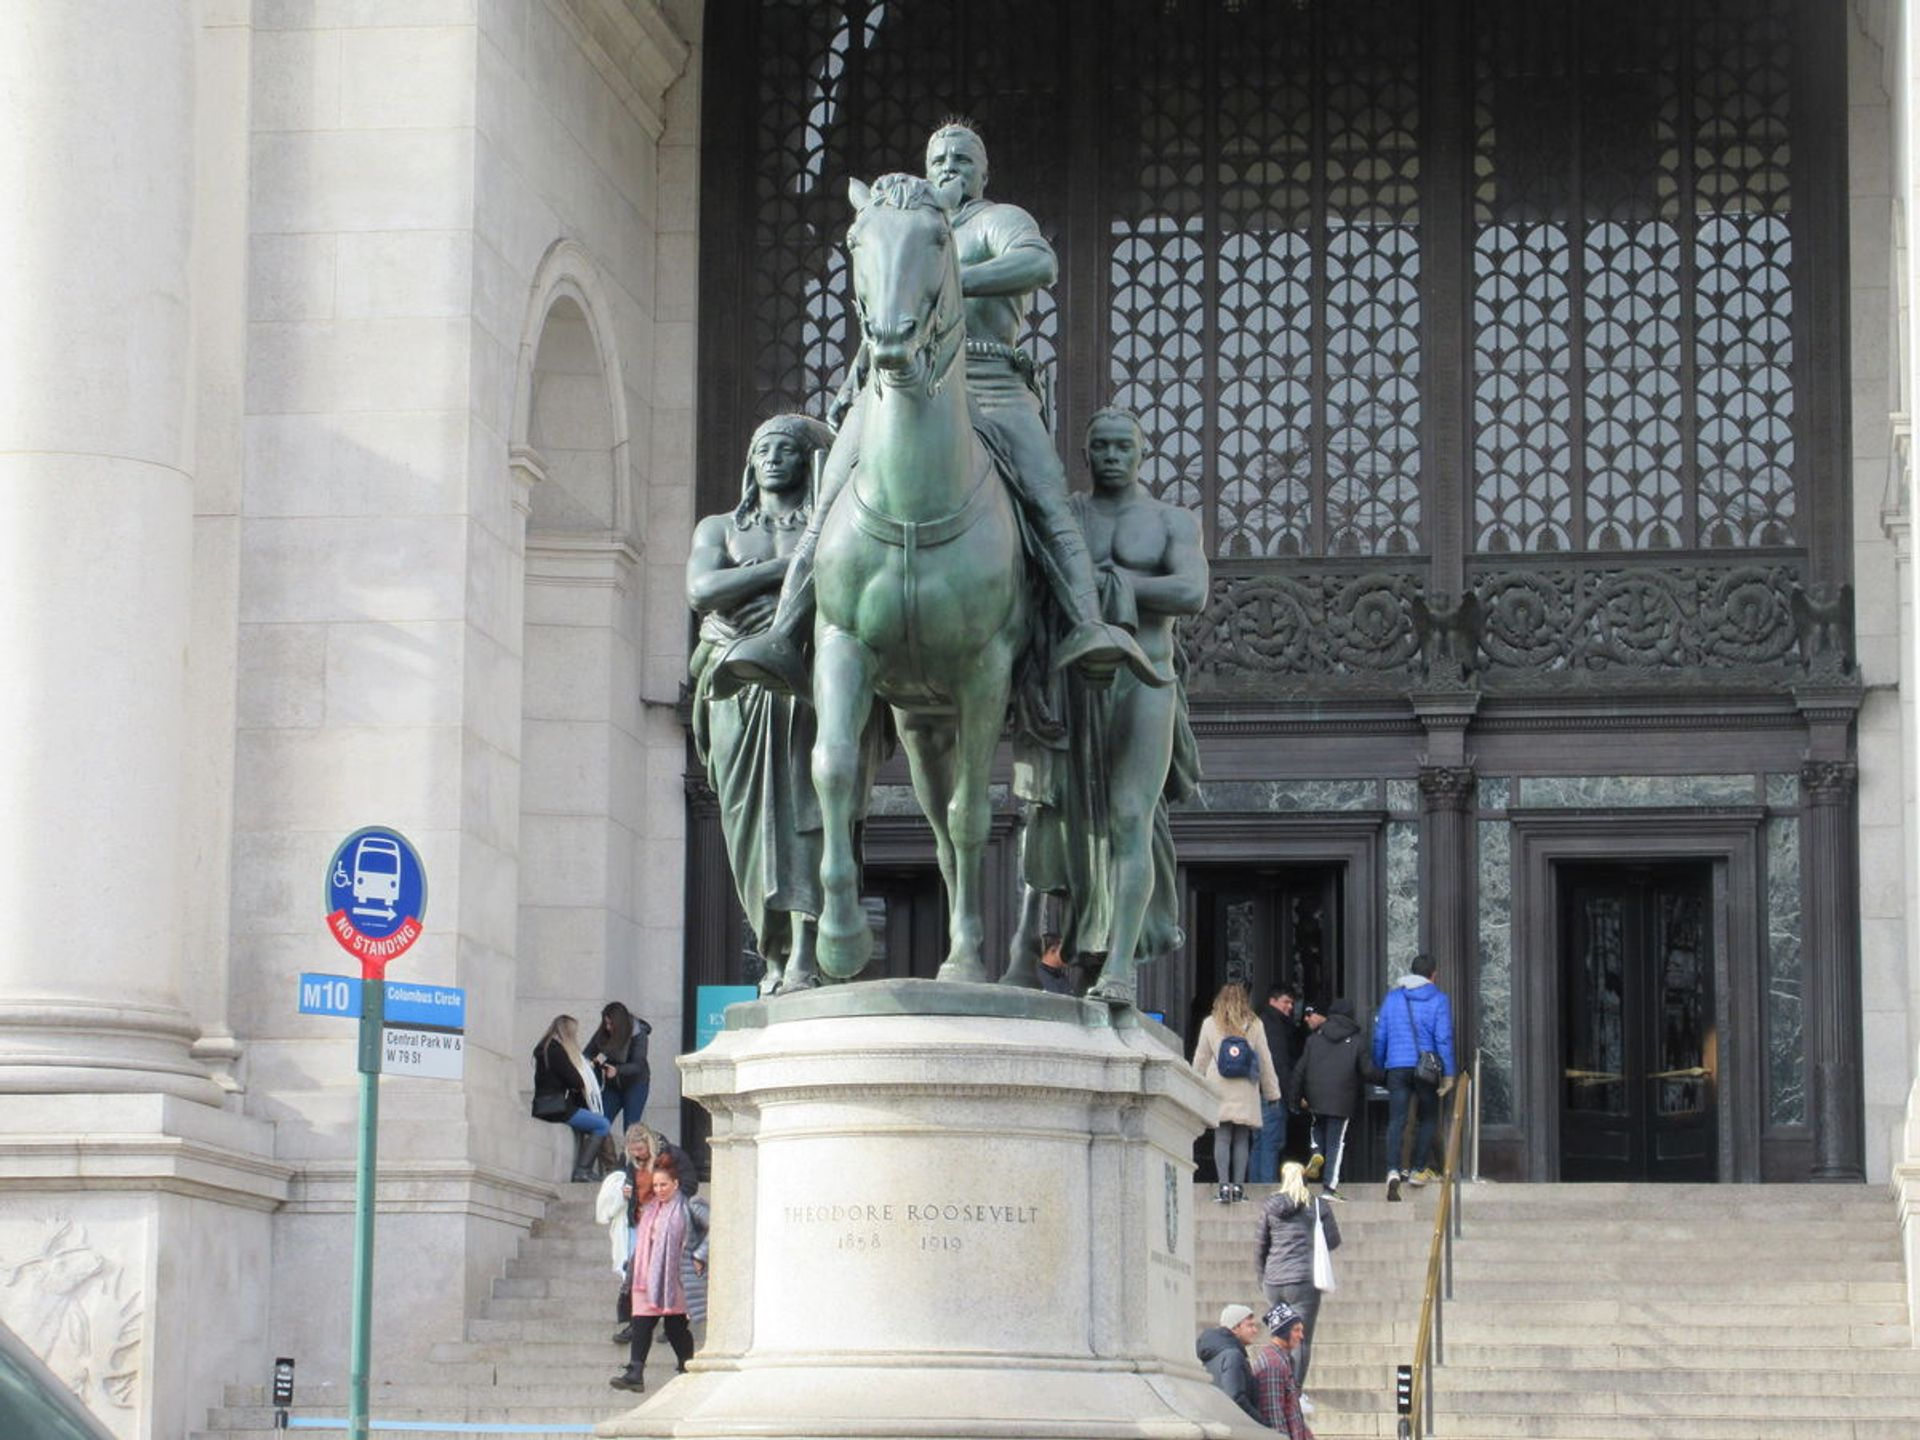 Statue of Theodore Roosevelt outside the American Museum of Natural History. Image courtesy Flickr